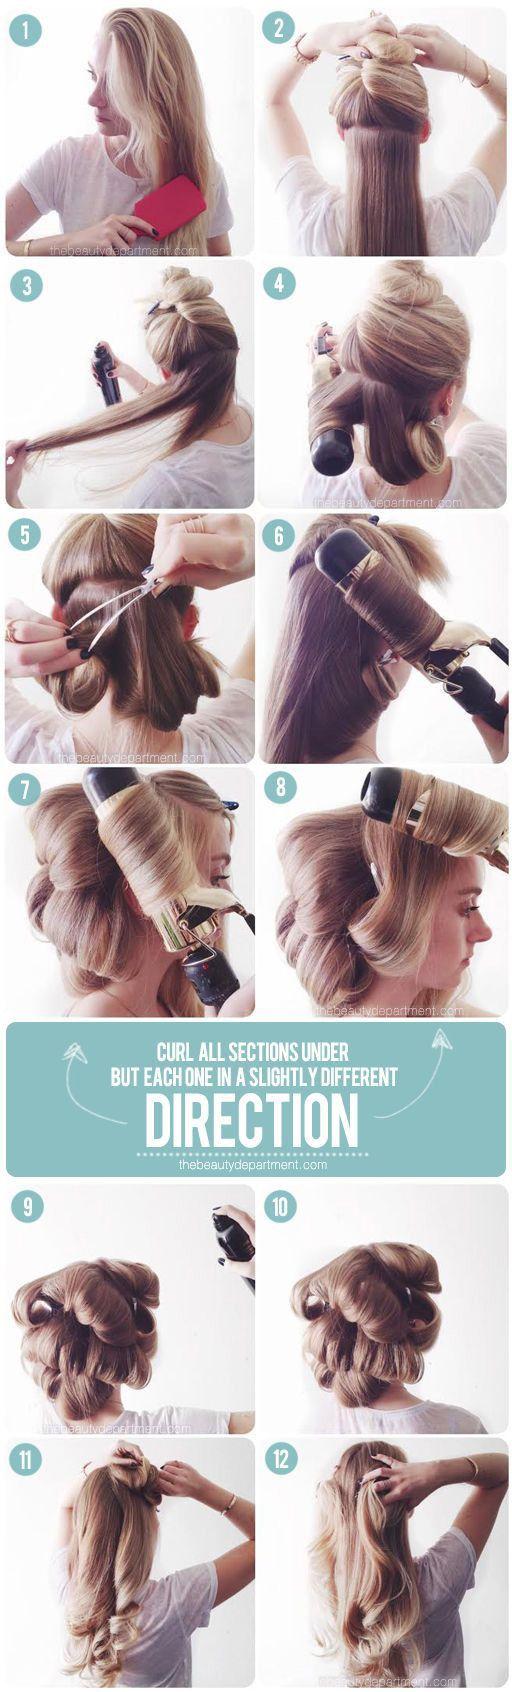 I love curling my hair, and my tool of choice is a curling wand. To me, curling wands are incredibly easy to use and give me awesome curls or waves whenever I need them. I'm obsessed with my wand and I bring it literally everywhere with me. But when it comes to curling irons, forget … Read More